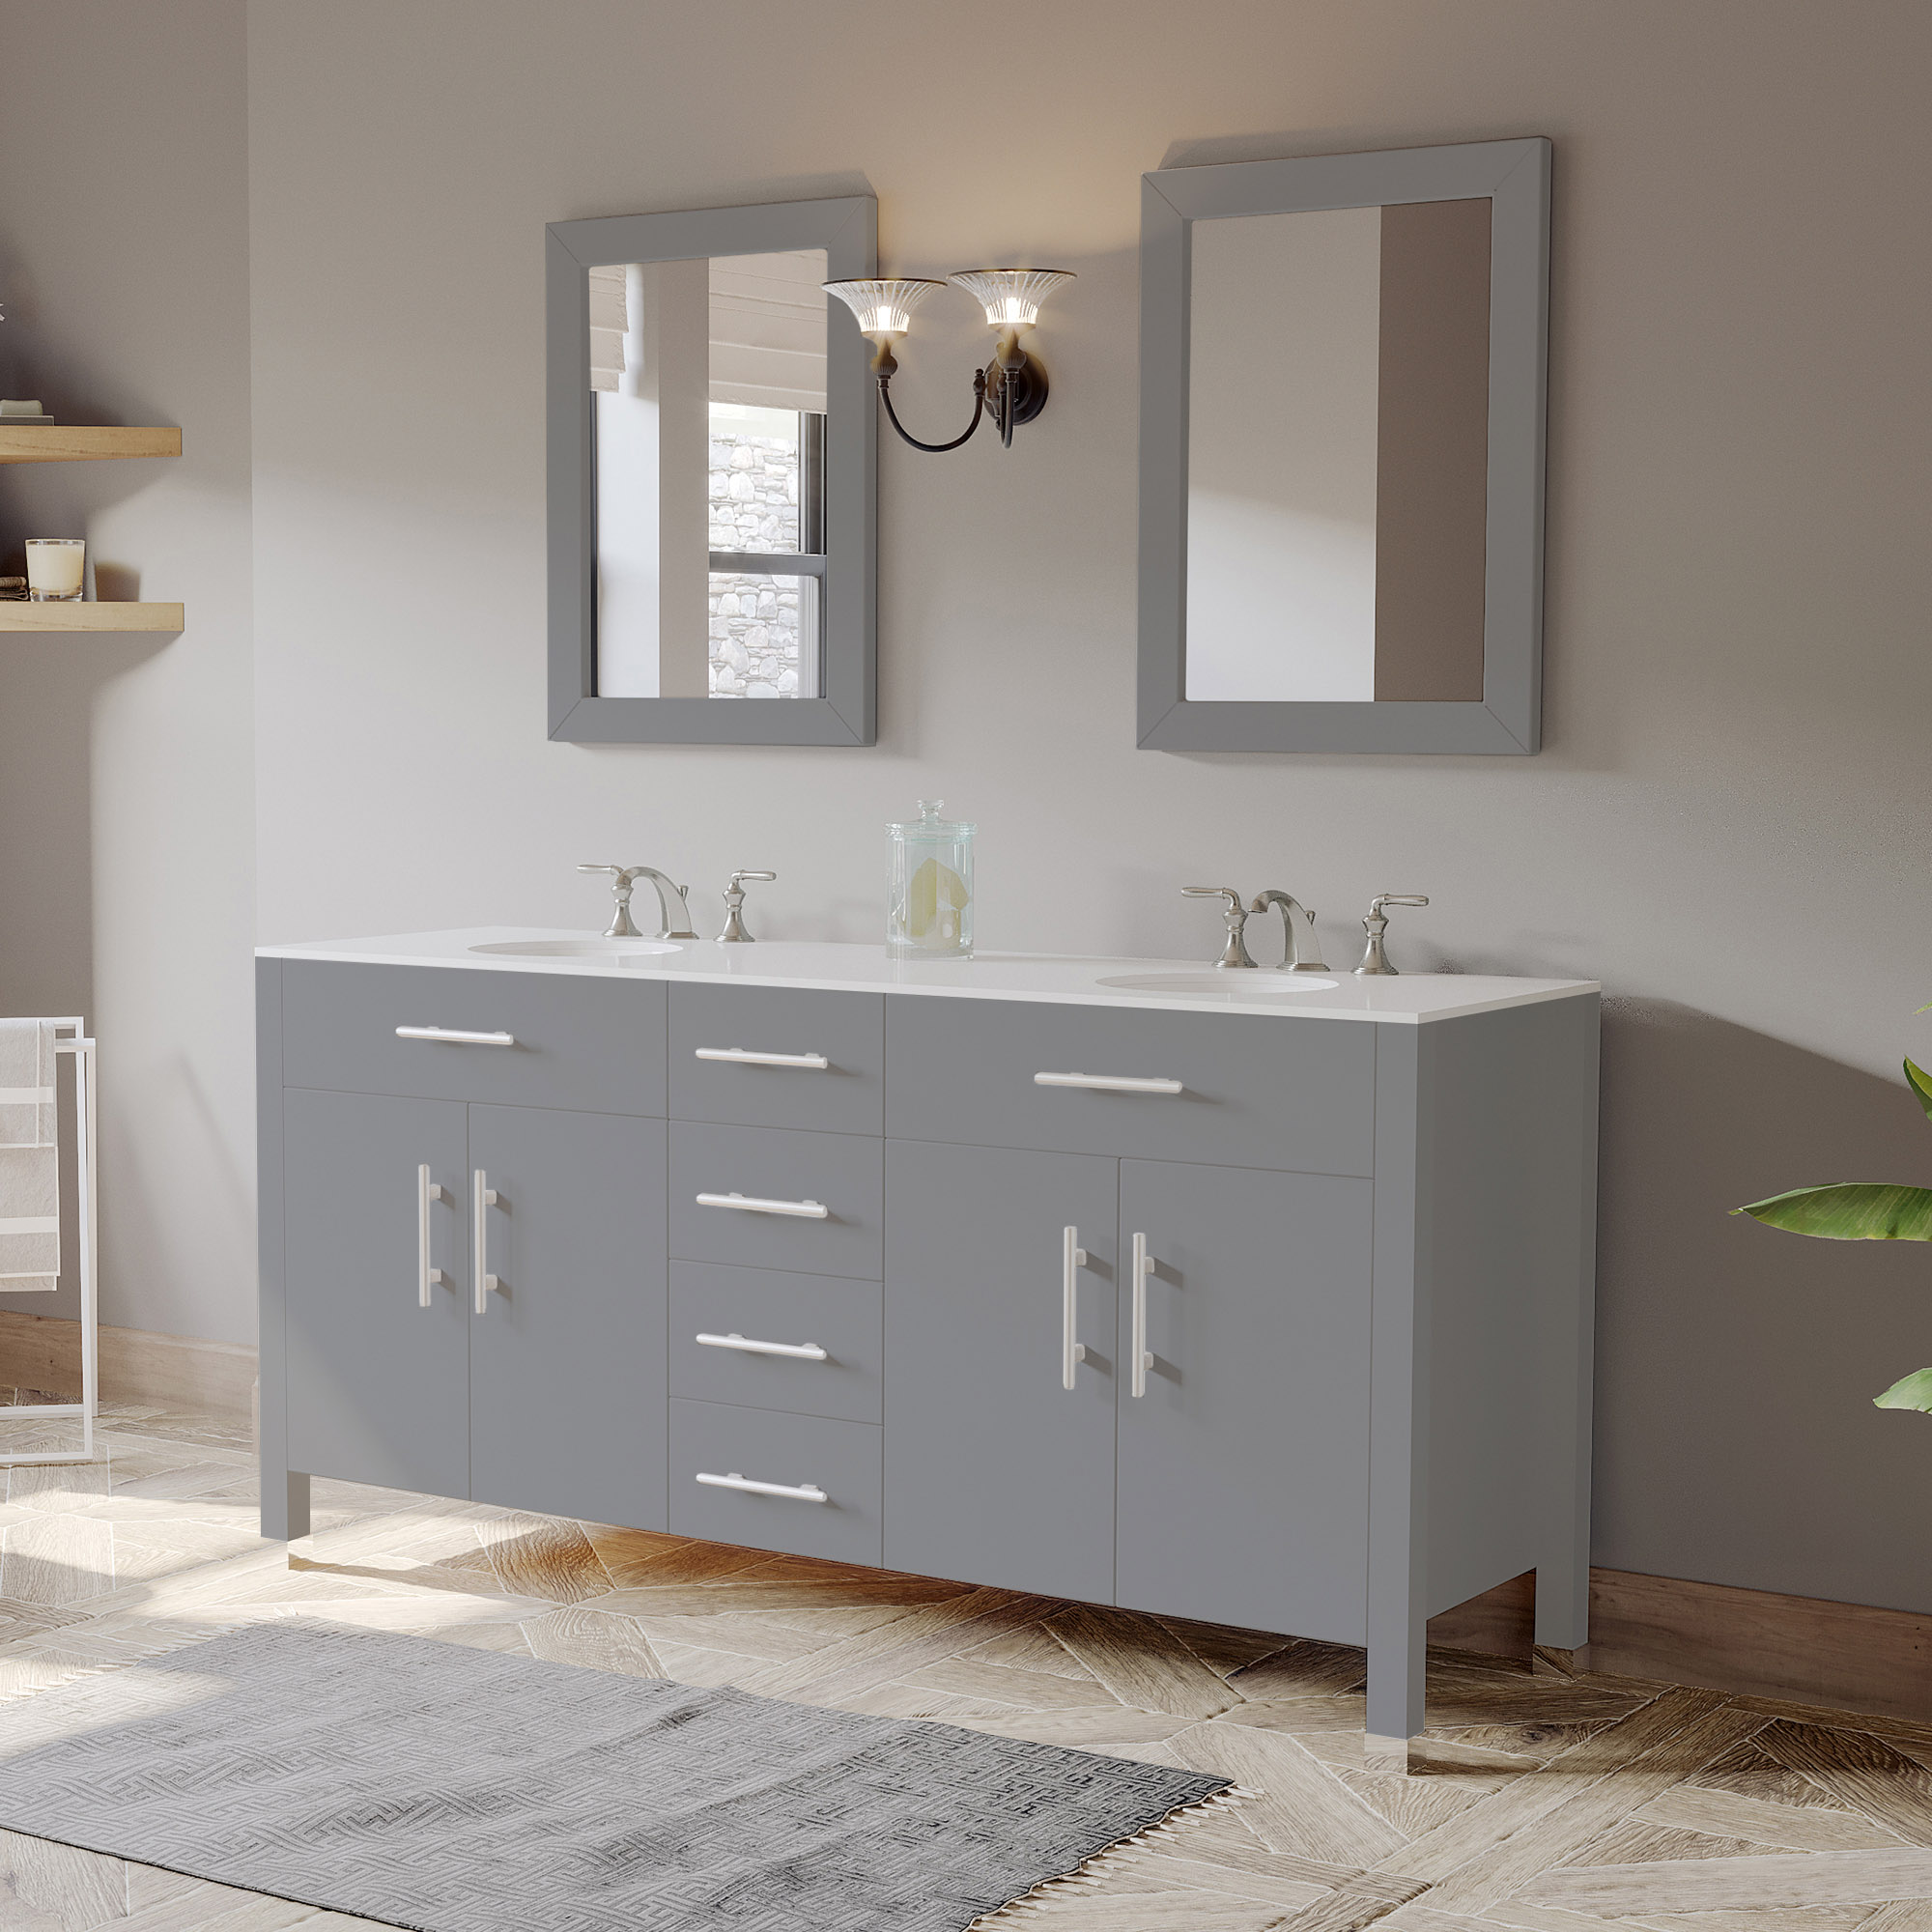 """72"""" Gray Double Bathroom Basin Sink Vanity with White Porcelain Countertop"""